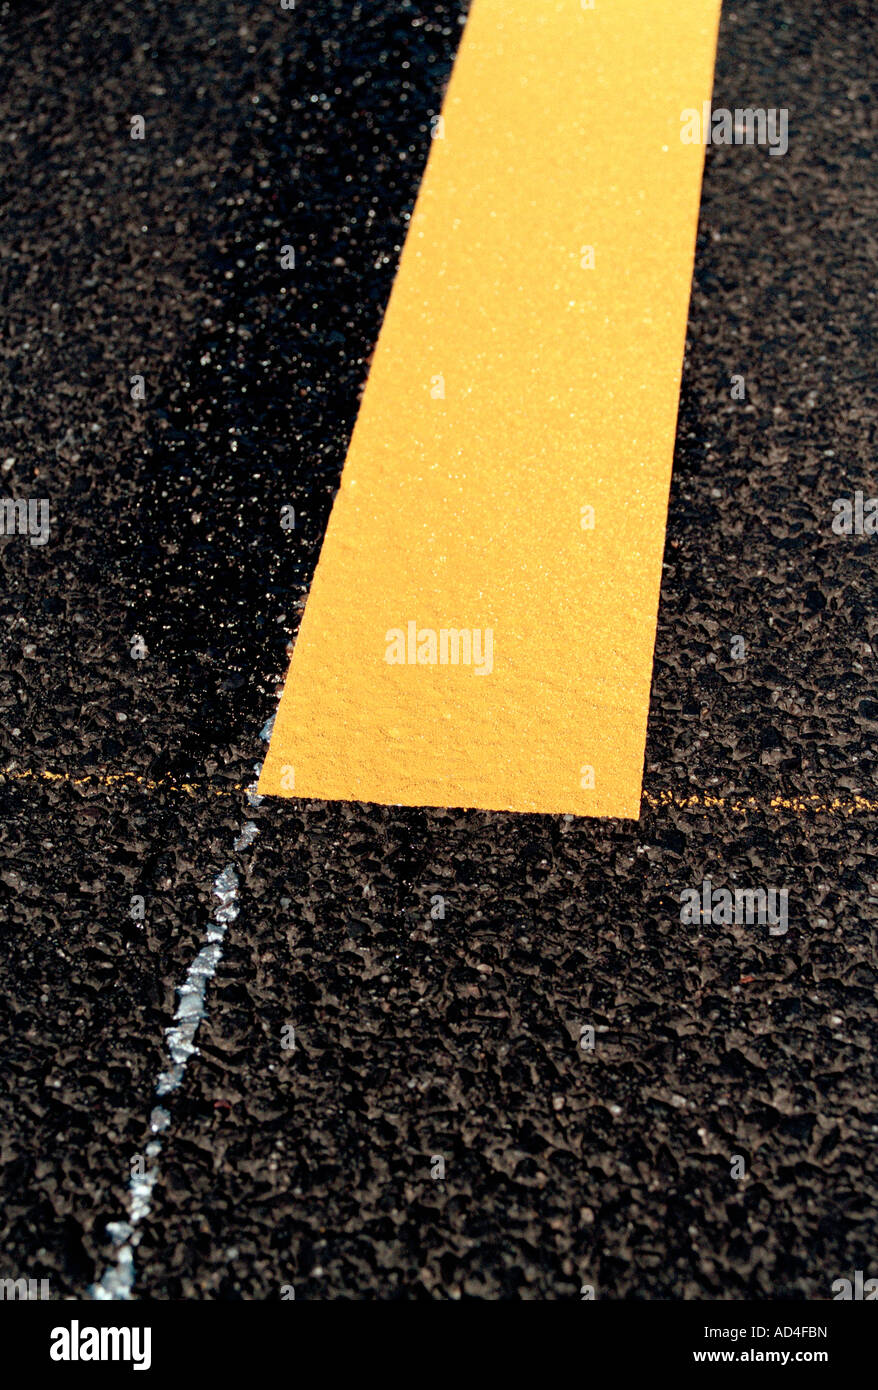 Detail of a yellow dividing line - Stock Image